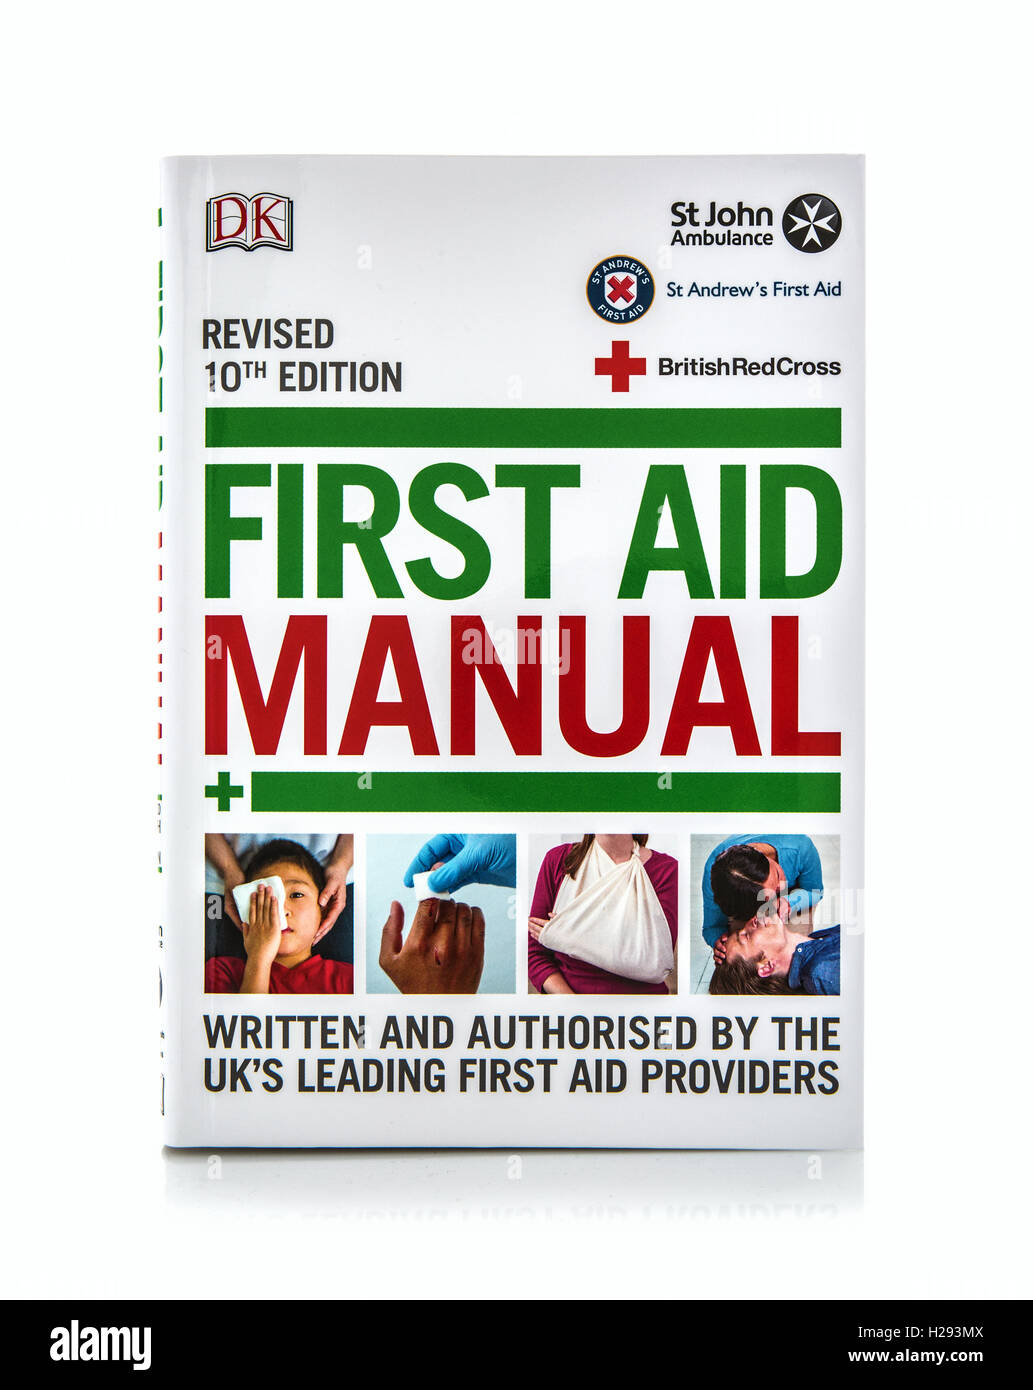 First Aid Manual on a white background - Stock Image